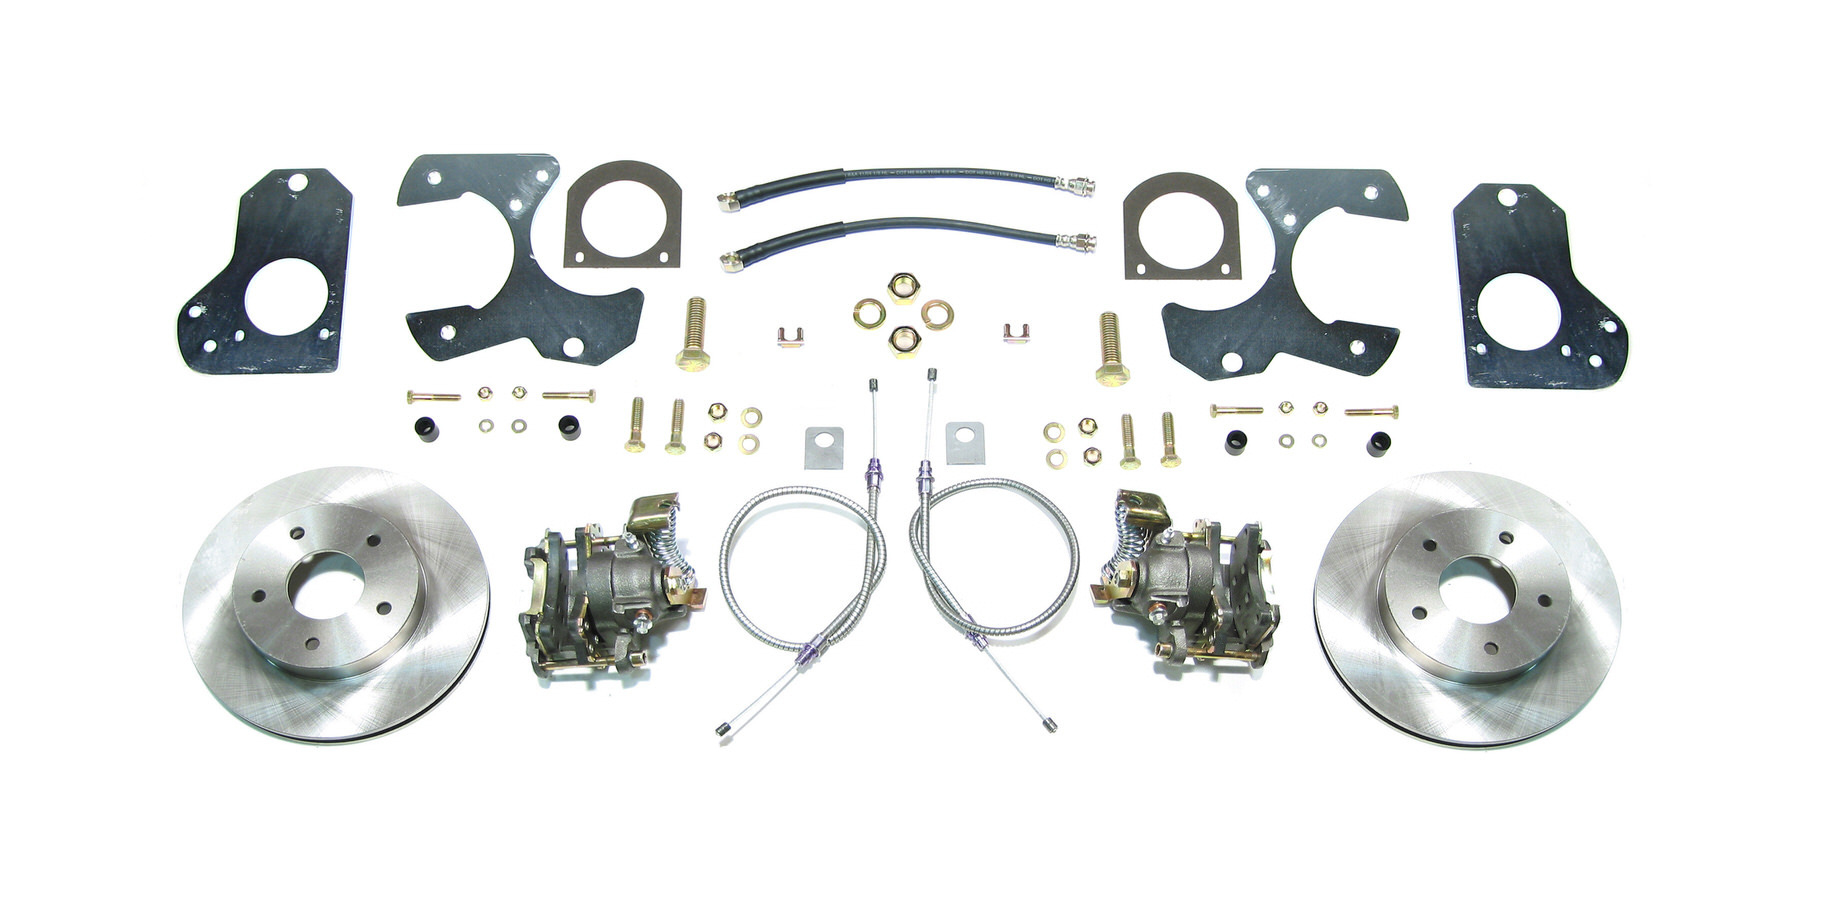 Right Stuff Detailing AFXRD78 Brake System, Disc Conversion, Rear, 1 Piston Caliper, 11.000 in Rotor, Offset Hat, Iron, Natural, GM 10-Bolt 1978-88, Kit